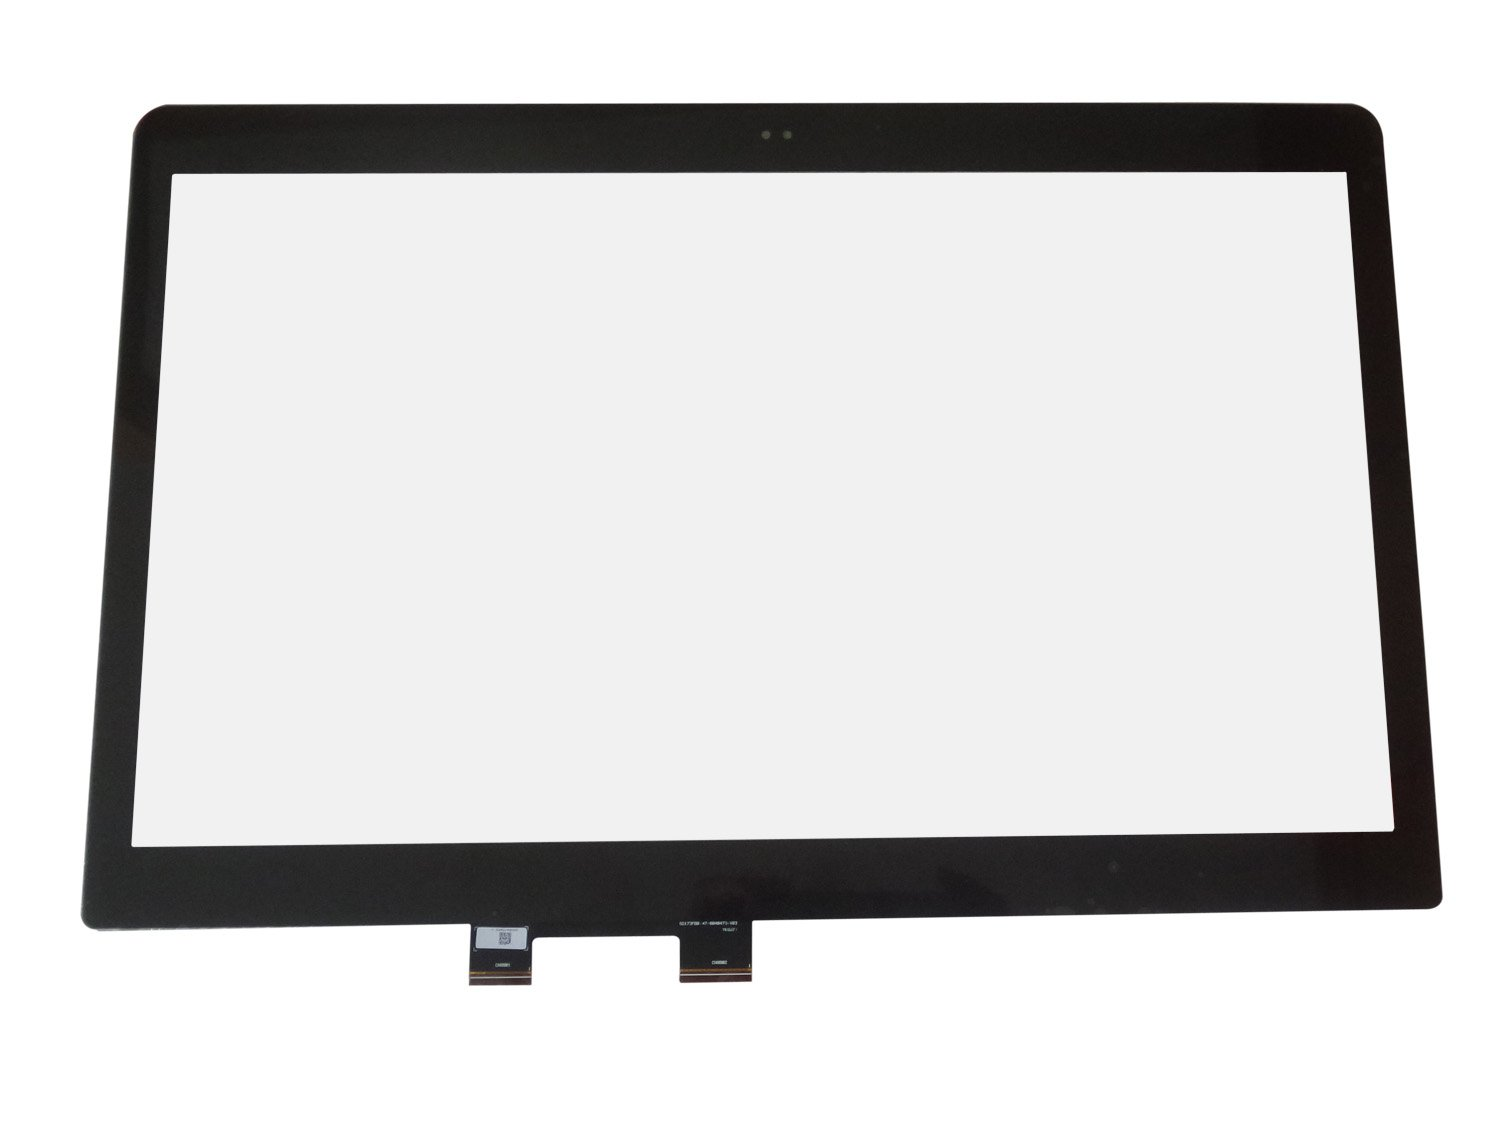 KRENEW 17.3'' Digitizer Touch Screen Replacement Glass for HP Y0F94AV (Non-LCD)